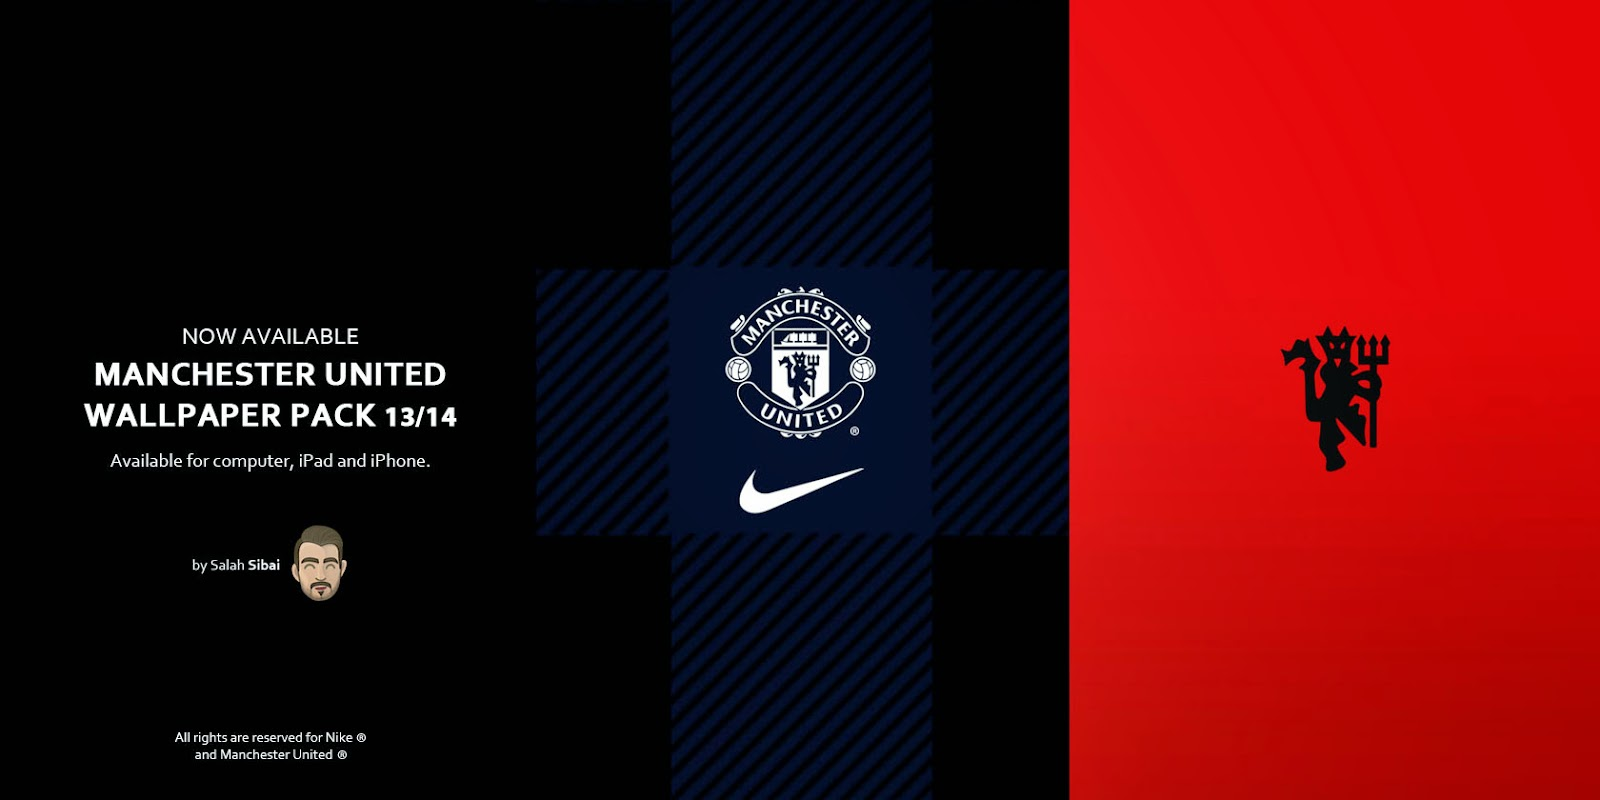 ipad mini wallpaper manchester united collections